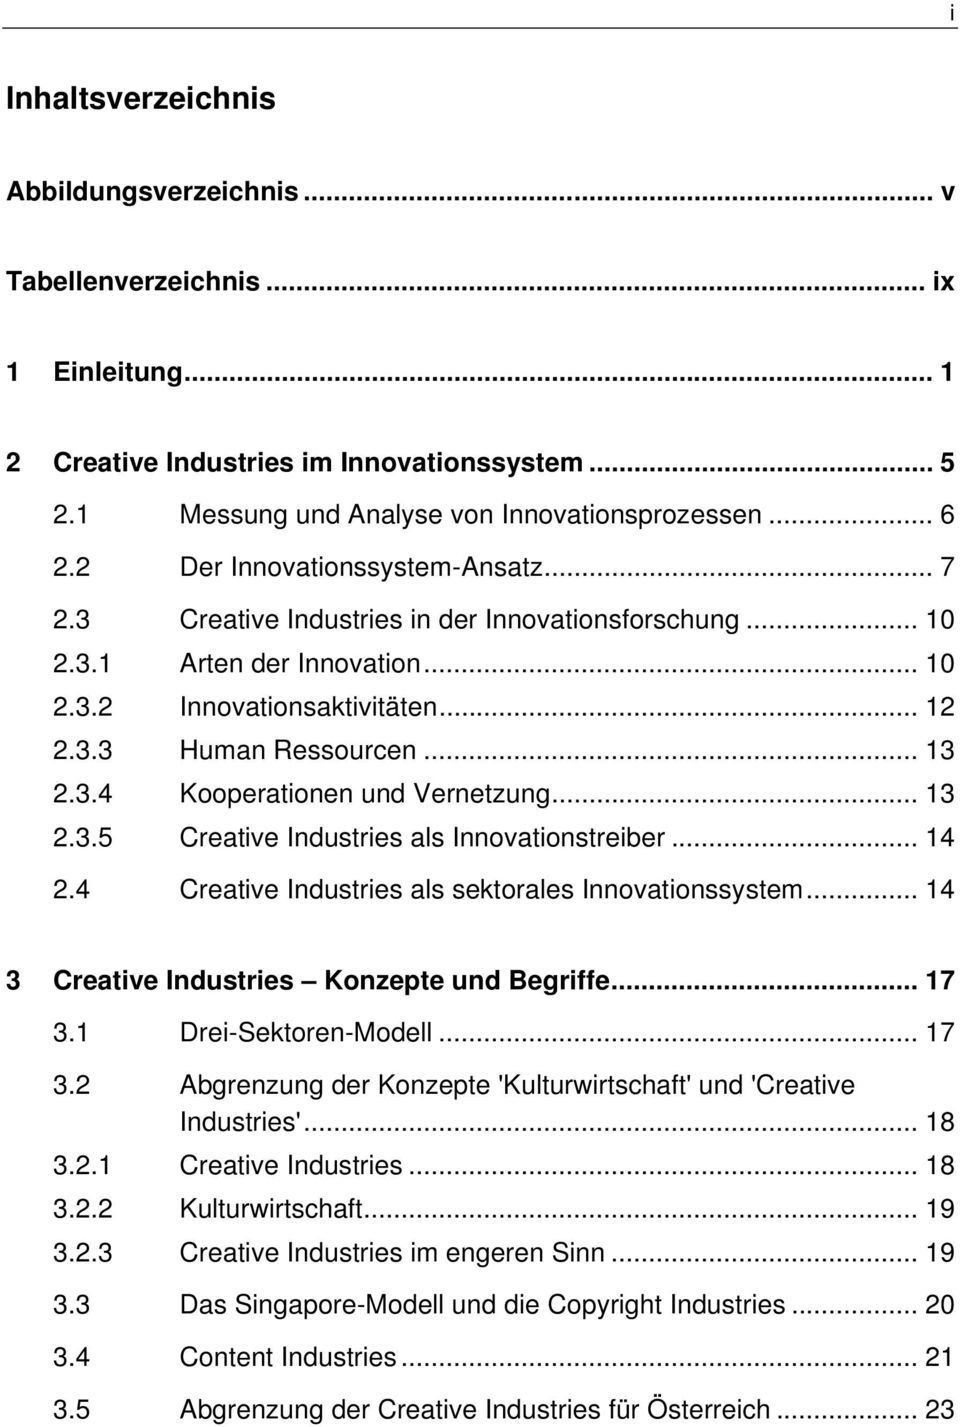 .. 13 2.3.5 Creative Industries als Innovationstreiber... 14 2.4 Creative Industries als sektorales Innovationssystem... 14 3 Creative Industries Konzepte und Begriffe... 17 3.1 Drei-Sektoren-Modell.